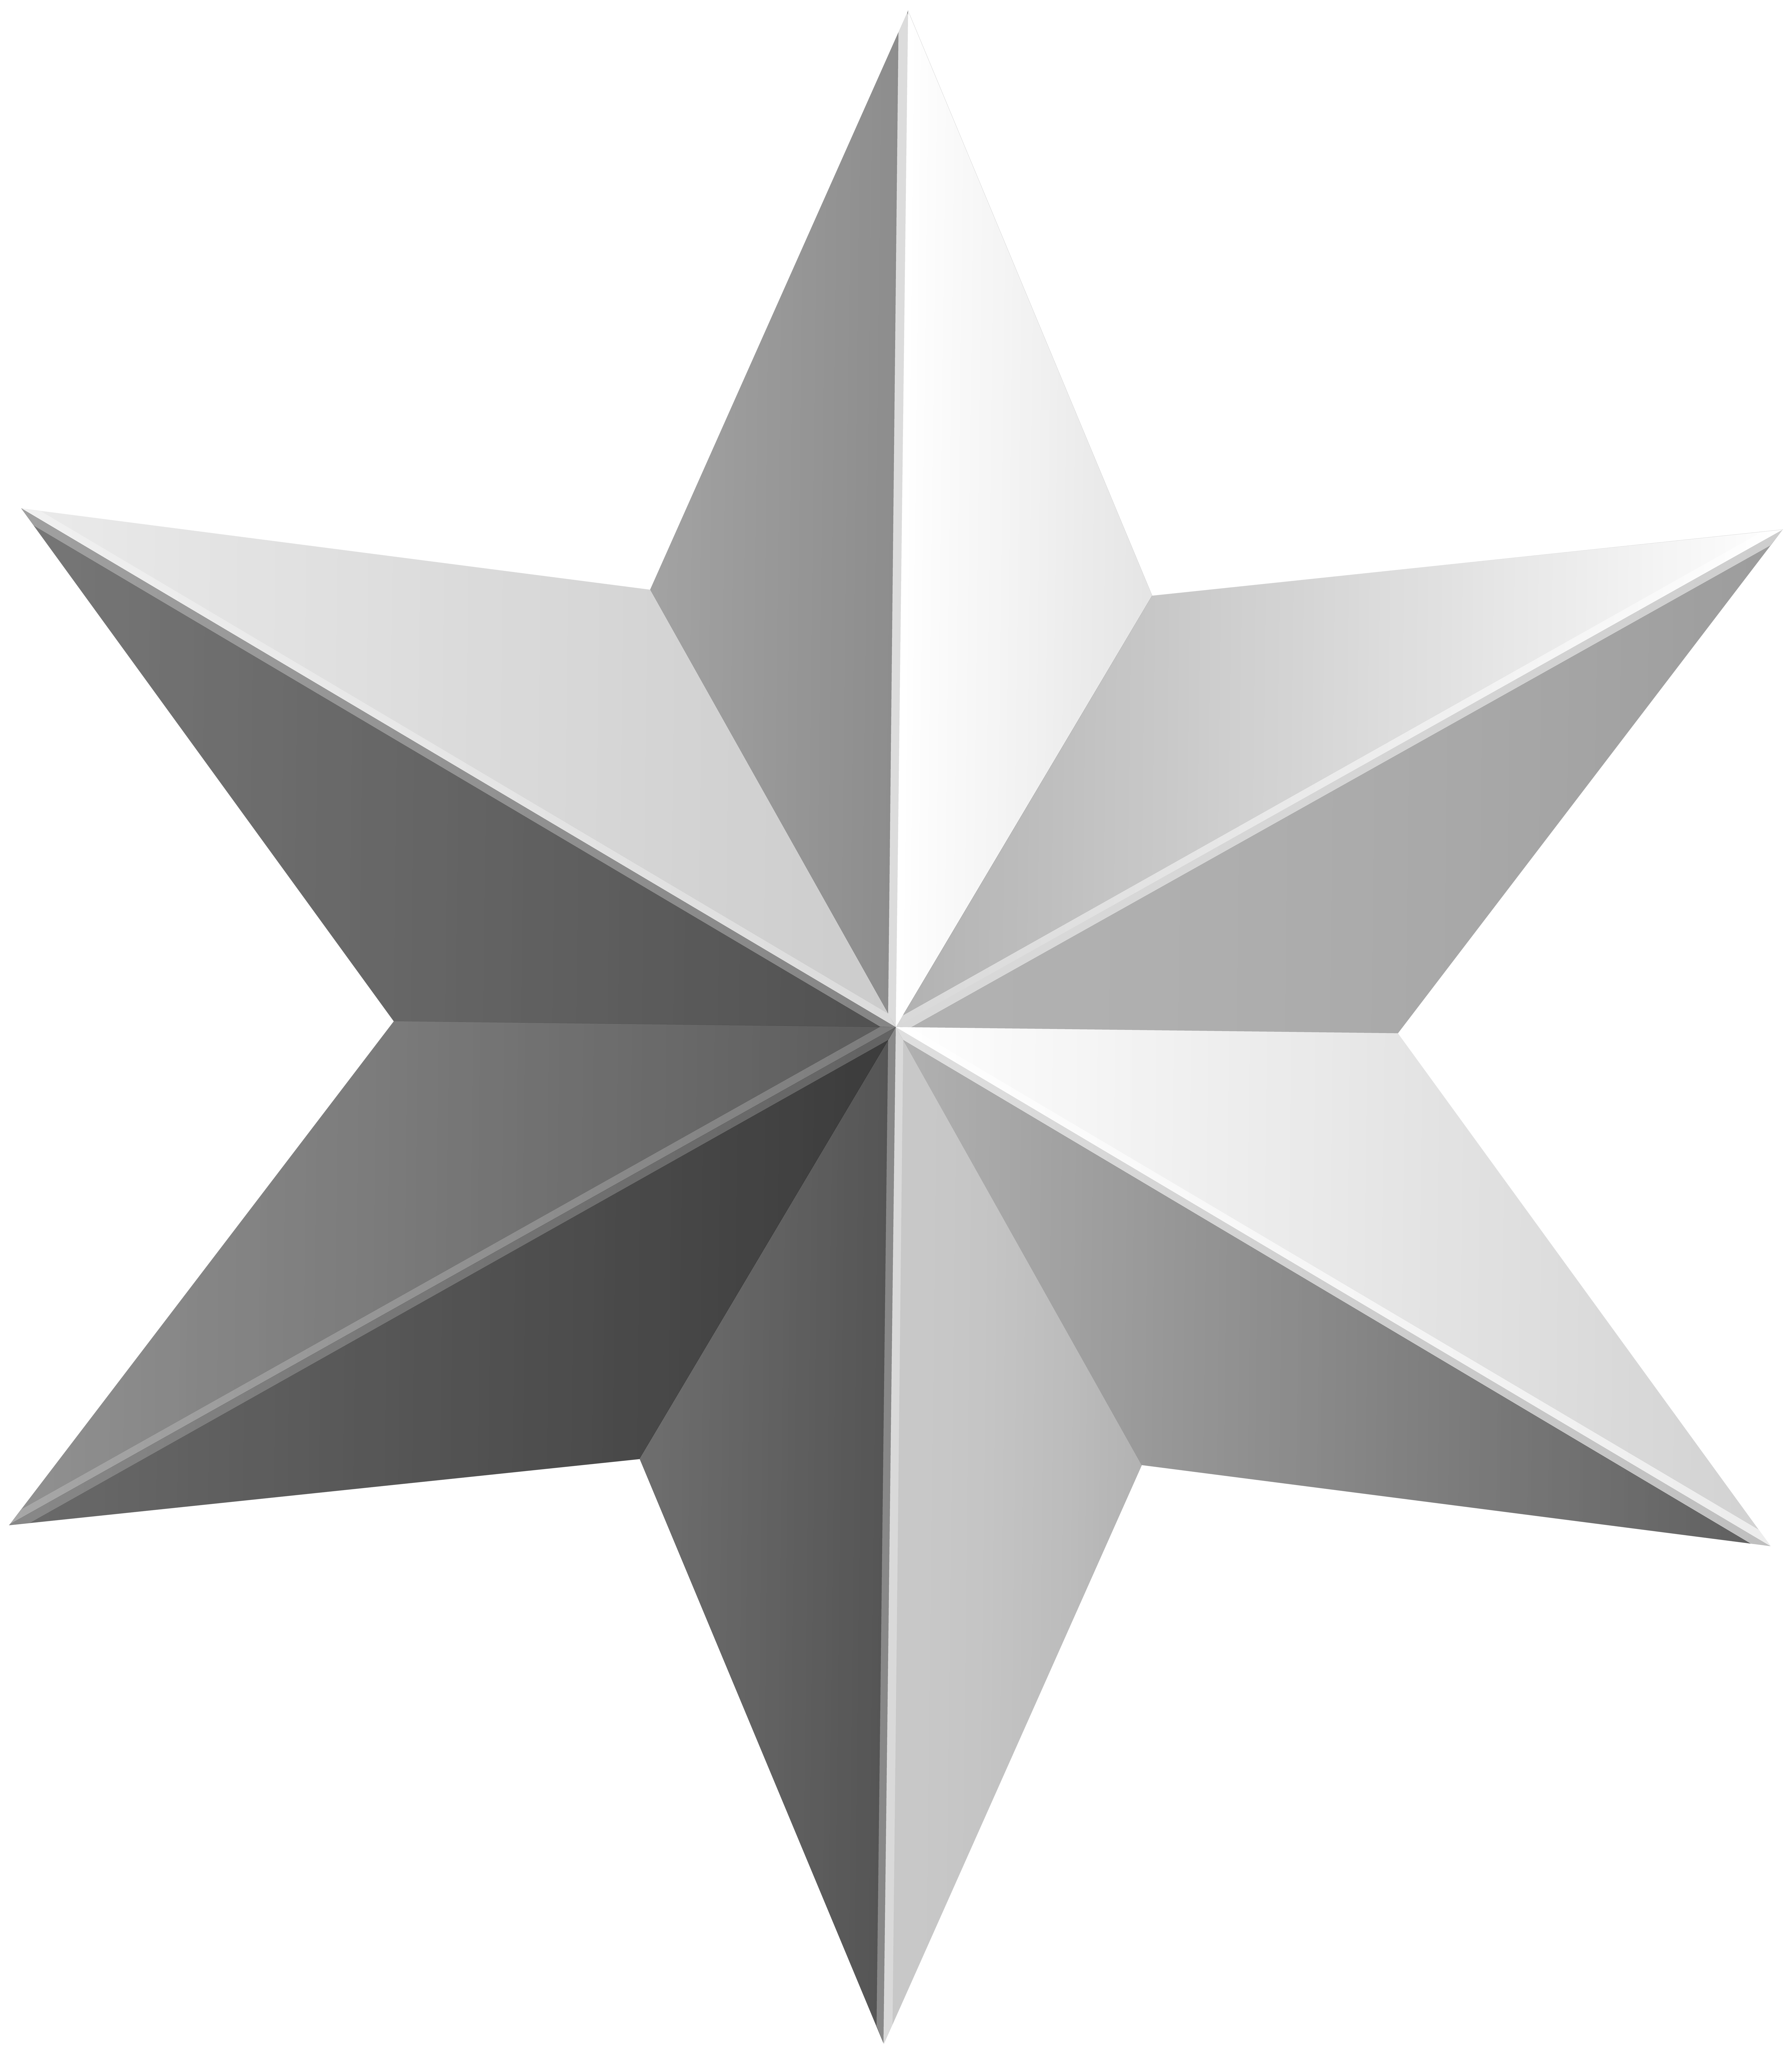 Silver star transparent png. Professional clipart collage